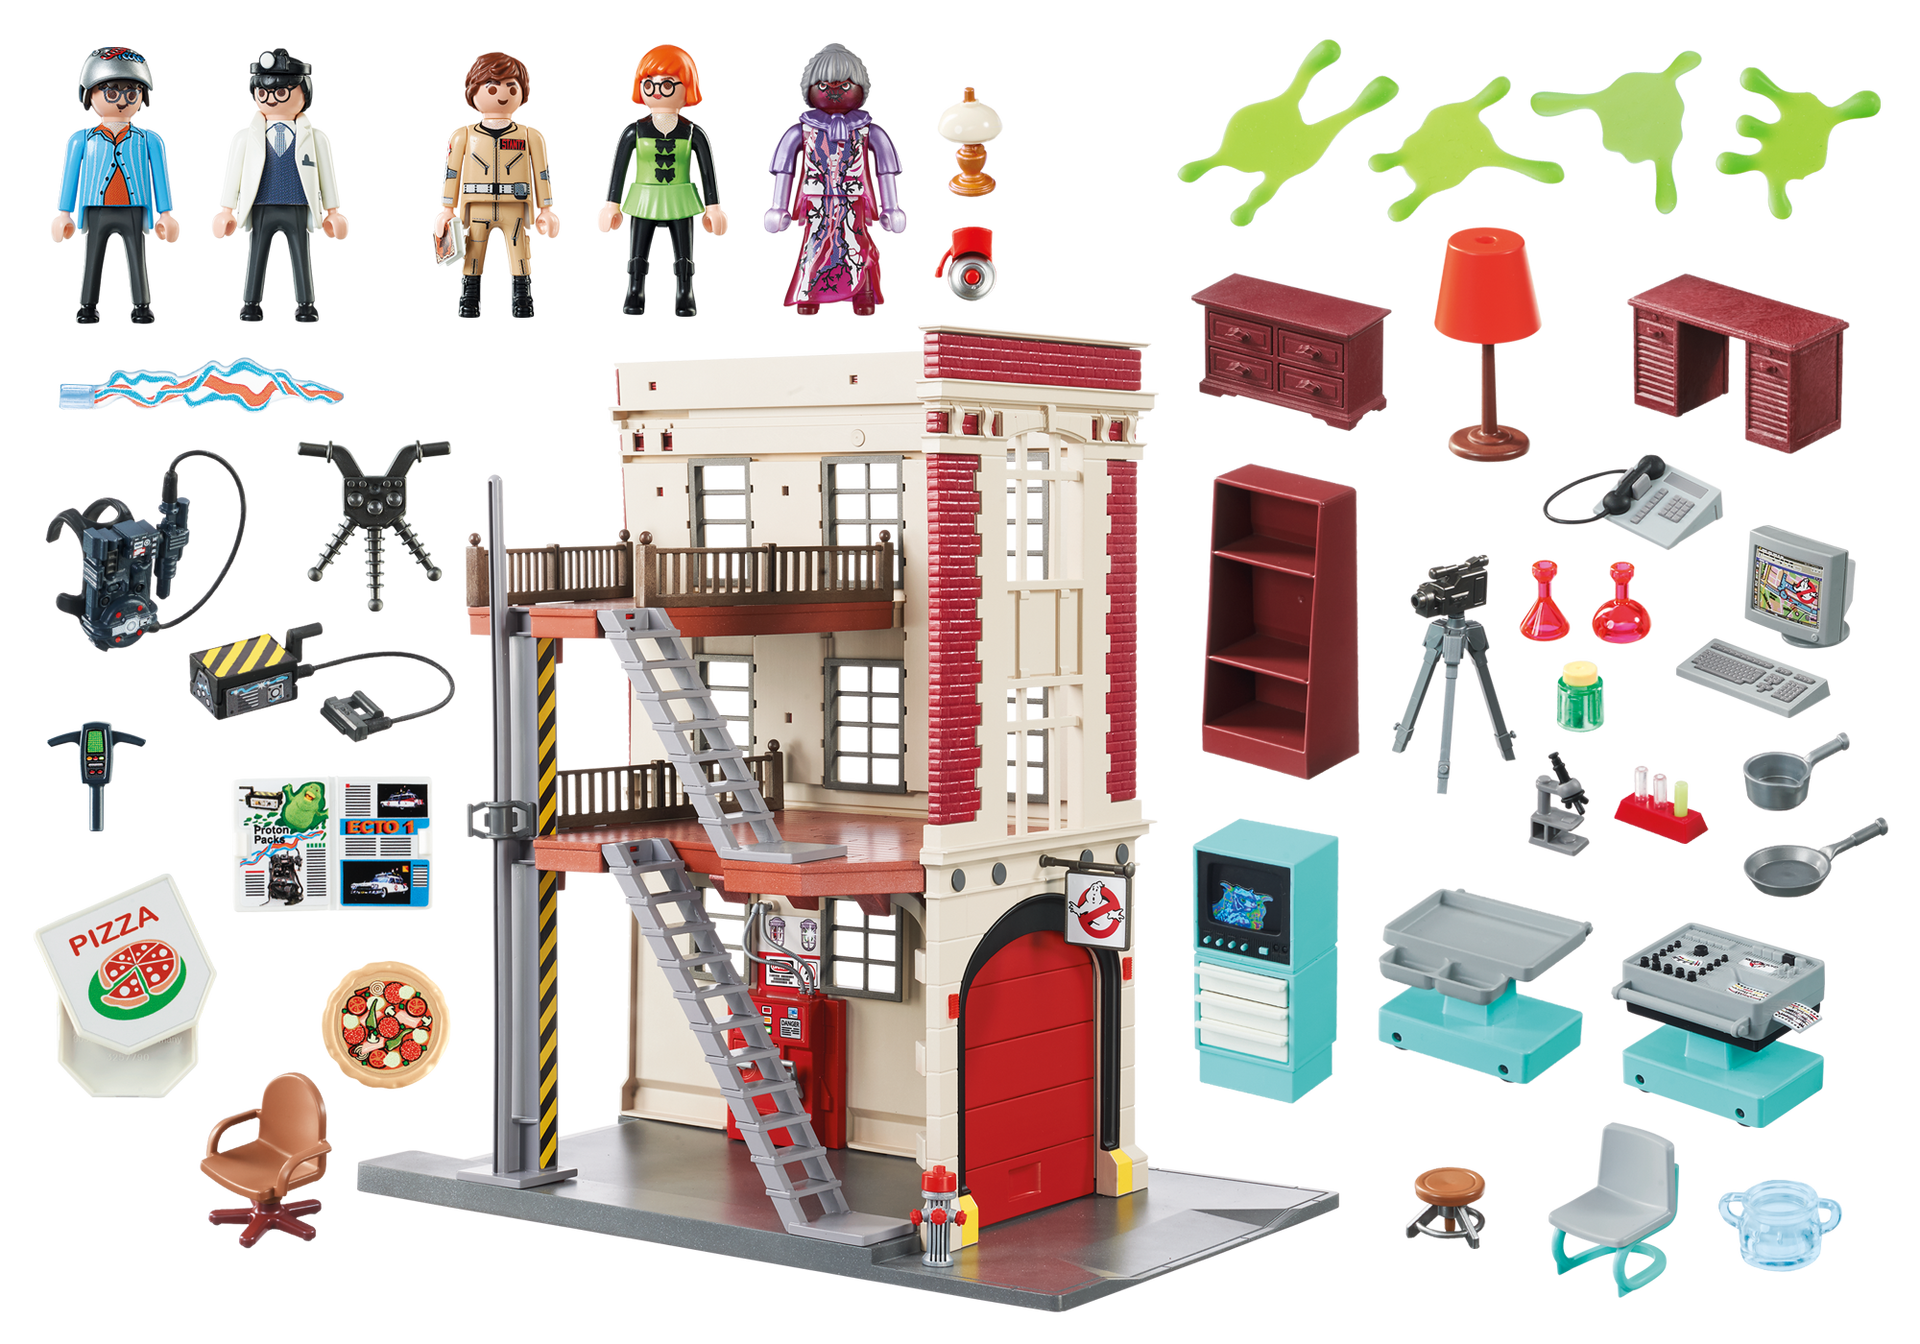 quartier g n ral ghostbusters 9219 playmobil france. Black Bedroom Furniture Sets. Home Design Ideas